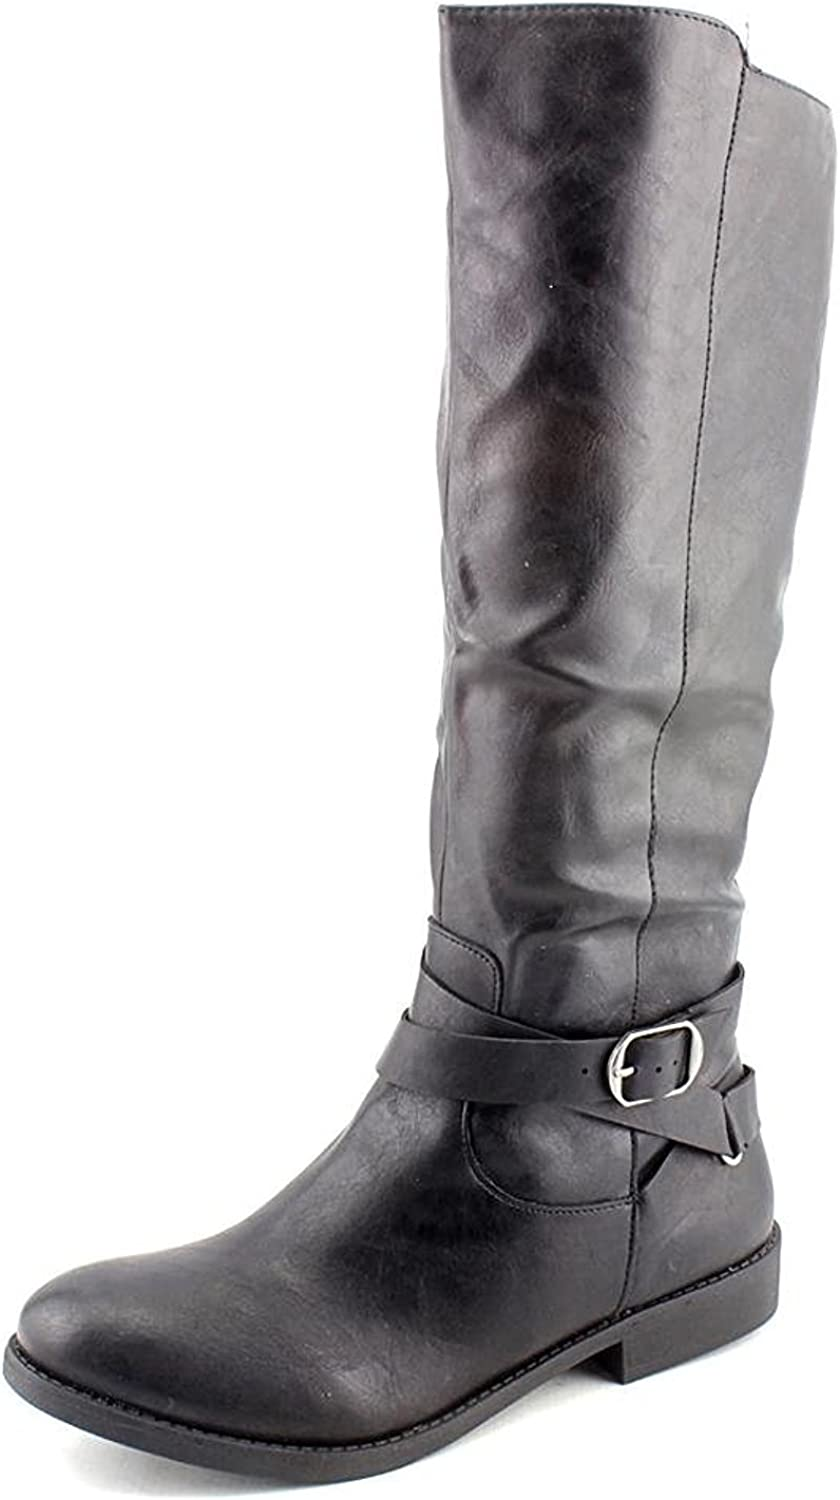 Style & Co. Women's Shoes Madixe Round Toe Knee High Riding Boots